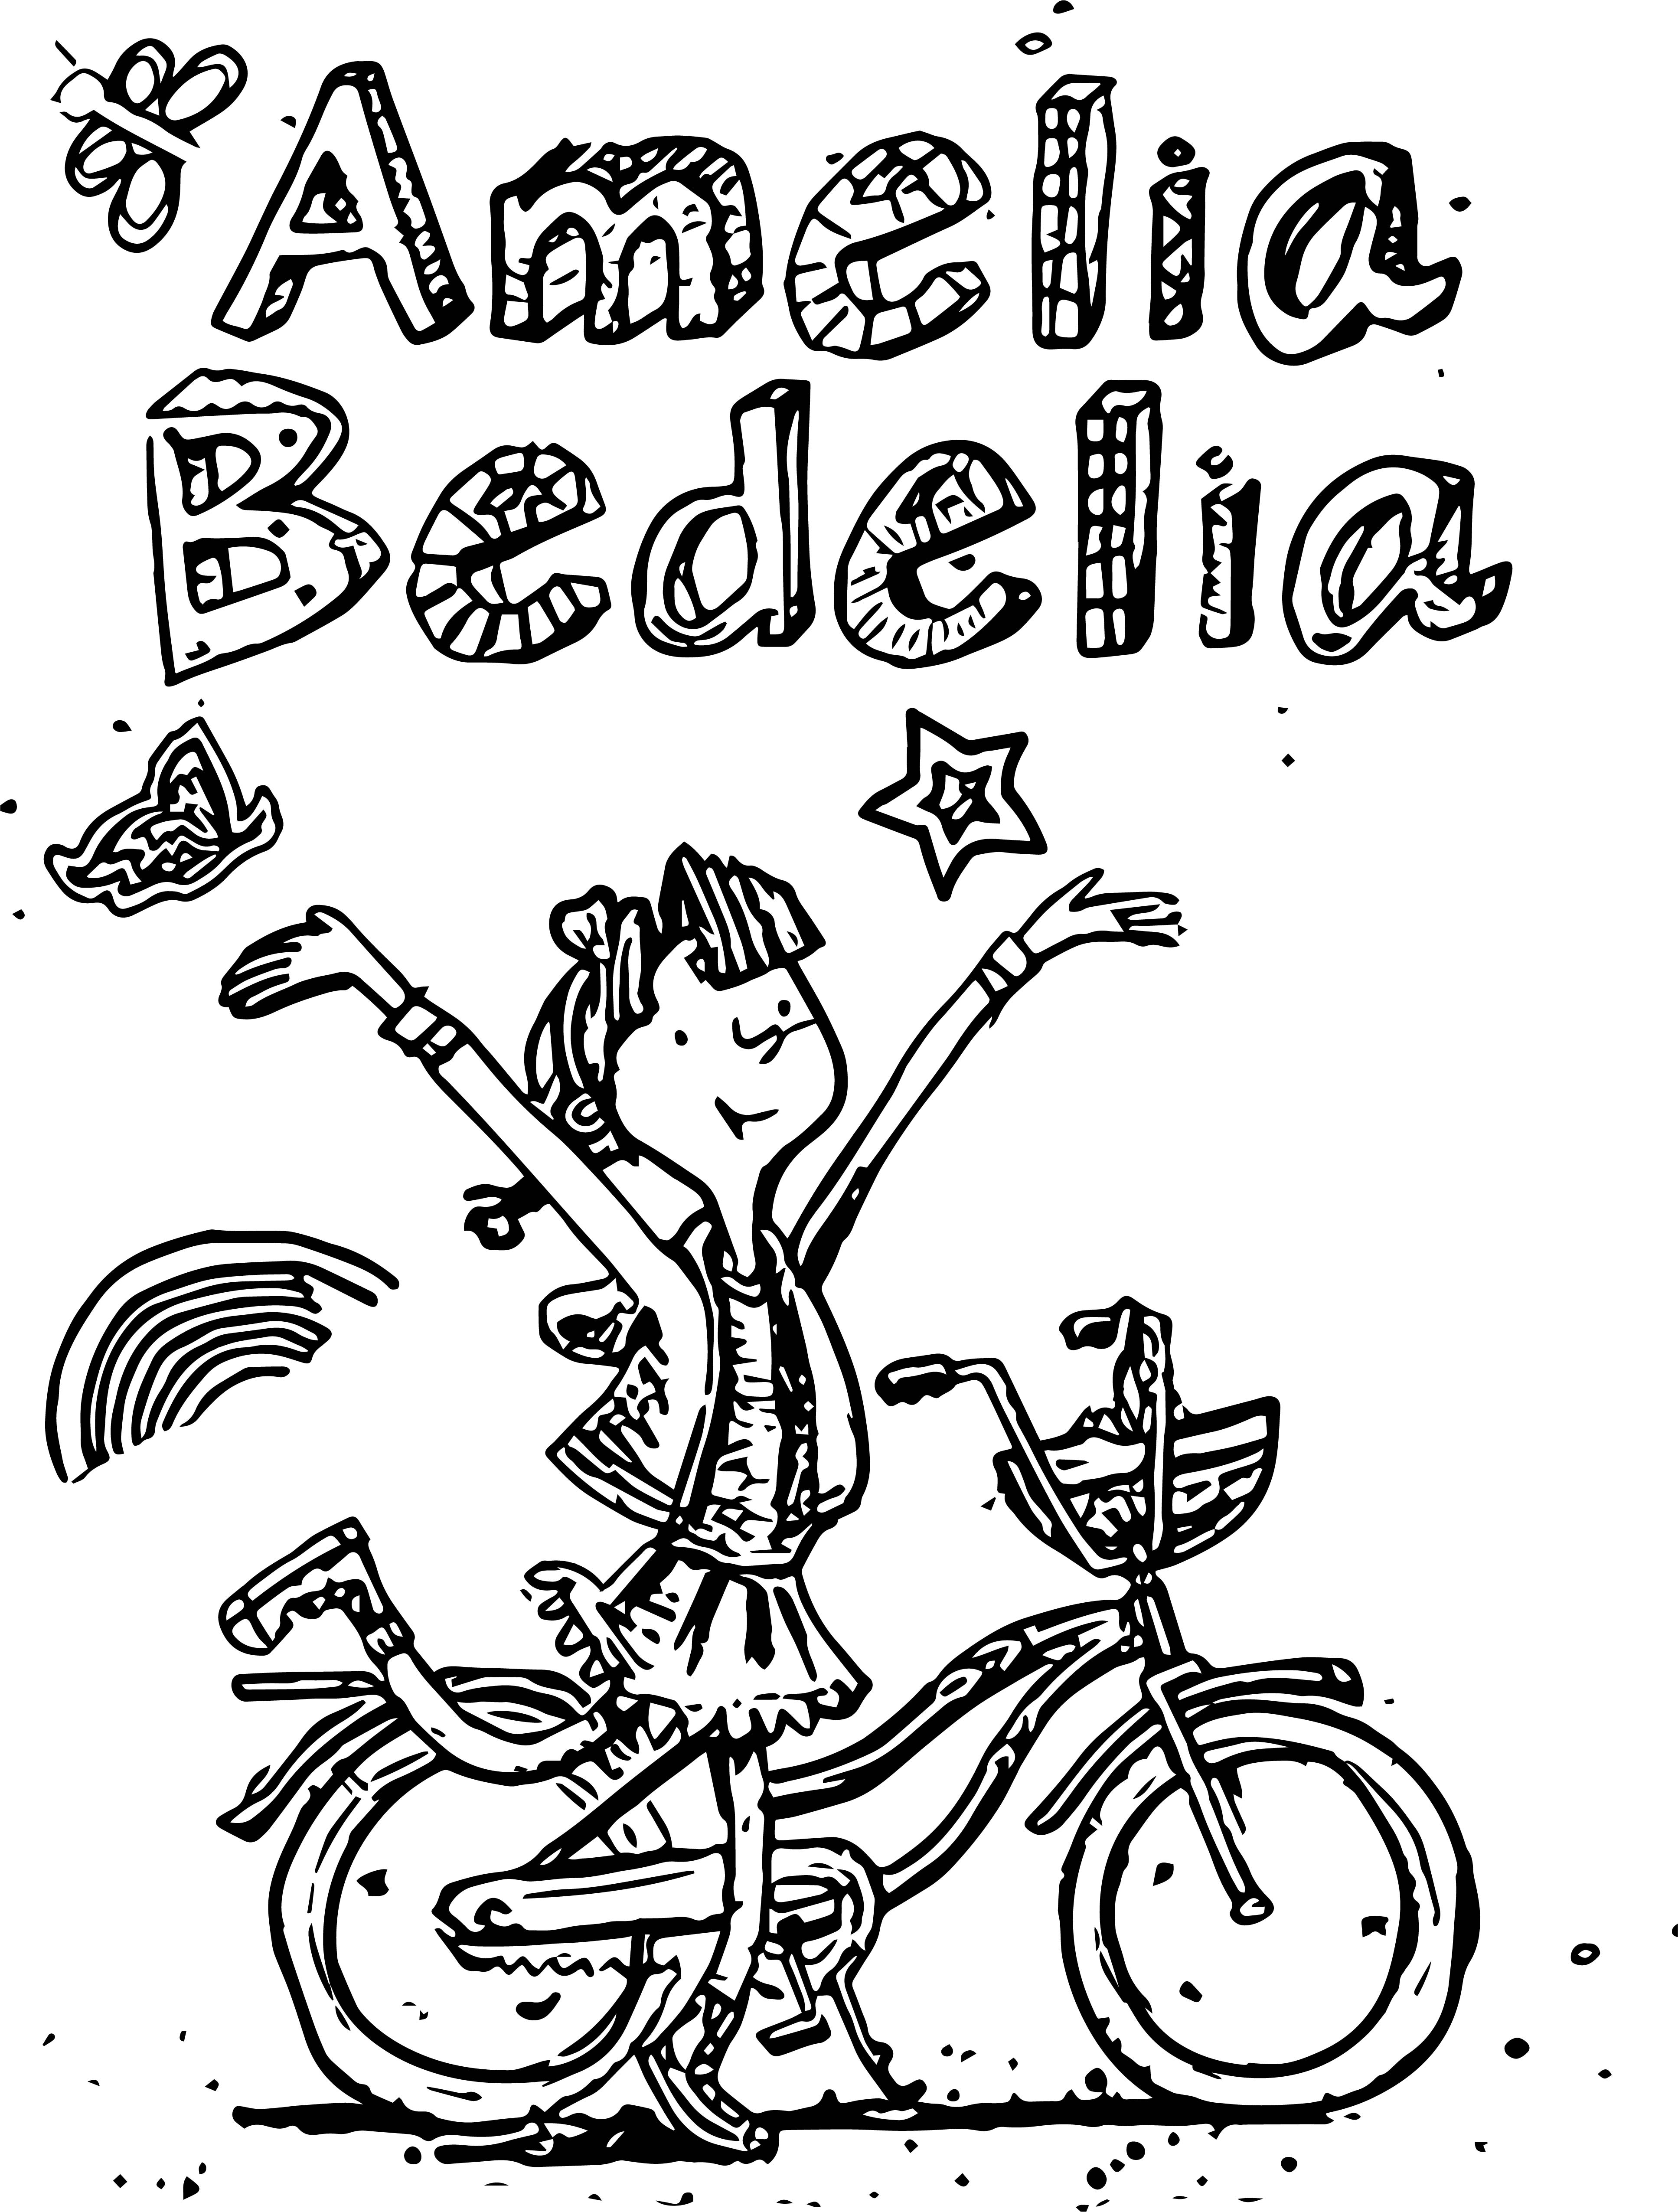 Worksheets Amelia Bedelia Worksheets amelia bedelia coloring pages drawing biycle page wecoloringpage